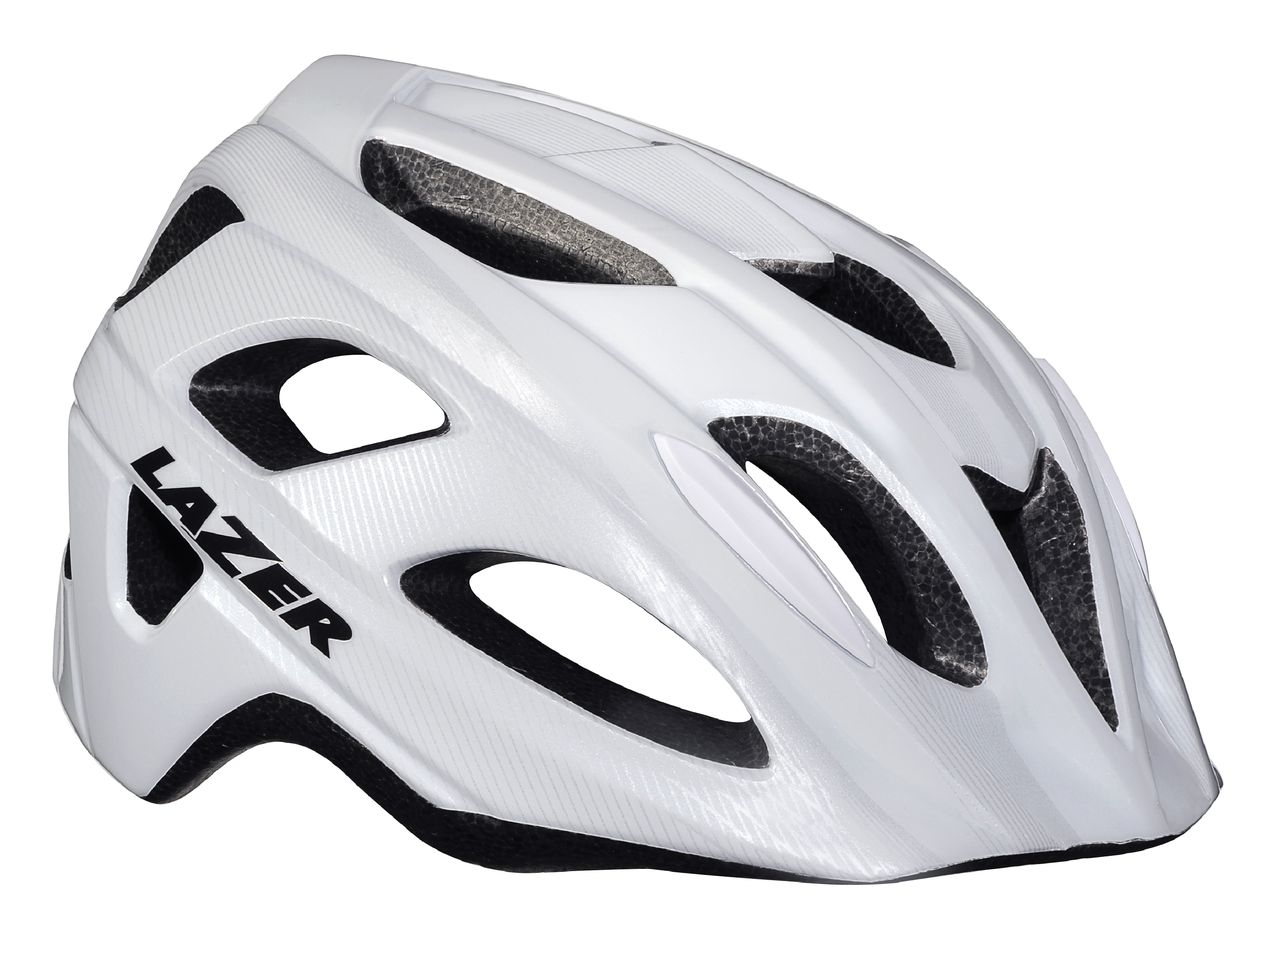 Casque Lazer BEAM White - M (55-59)